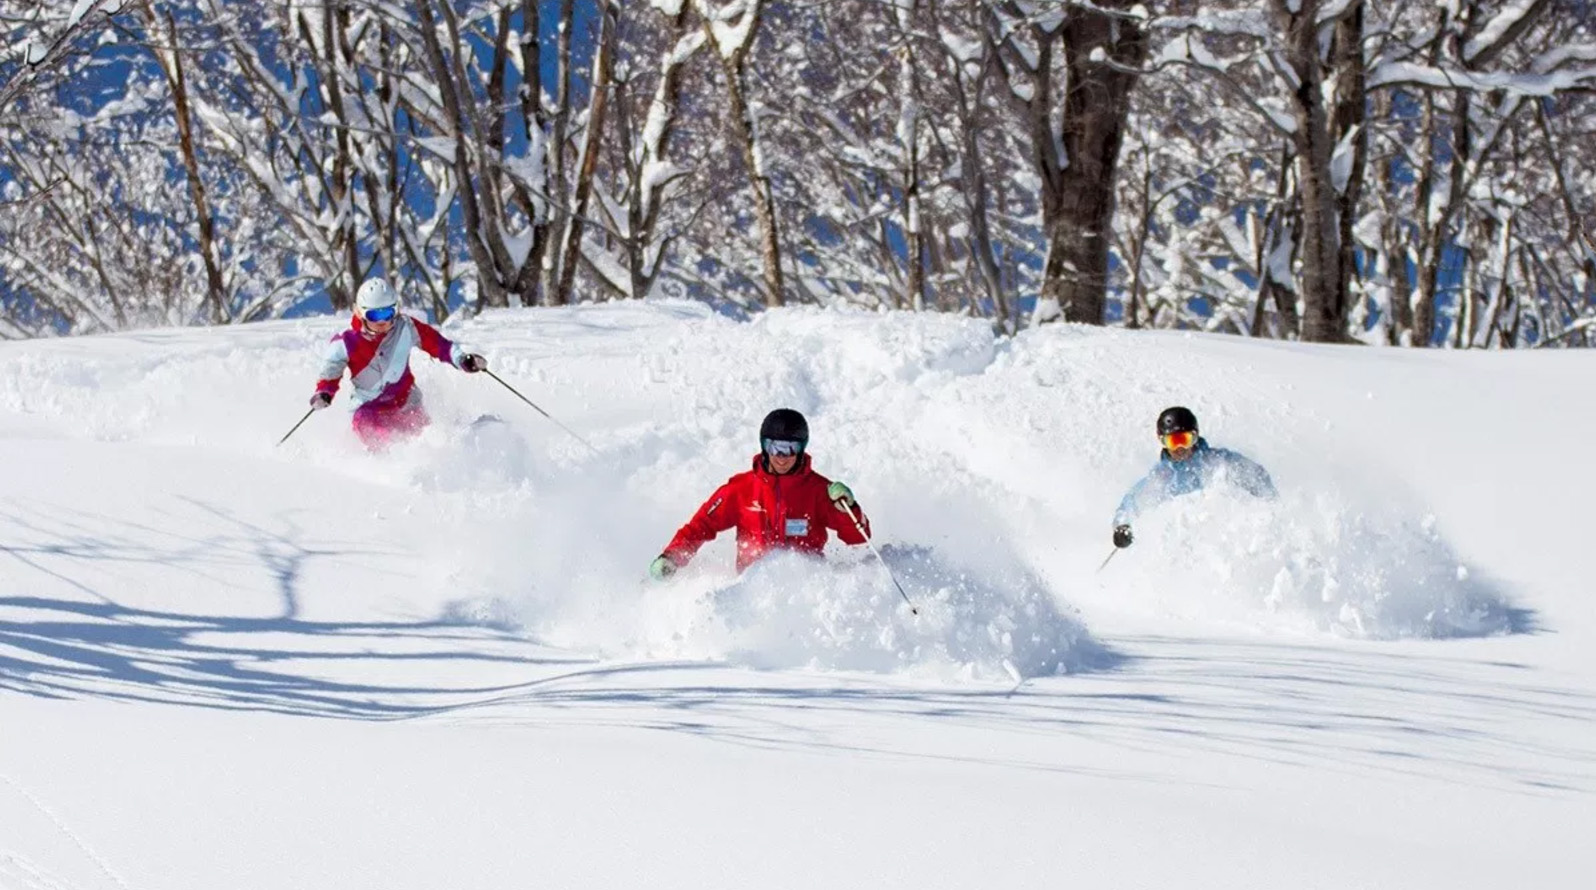 We Are Sno ski instructor course students in the powder!